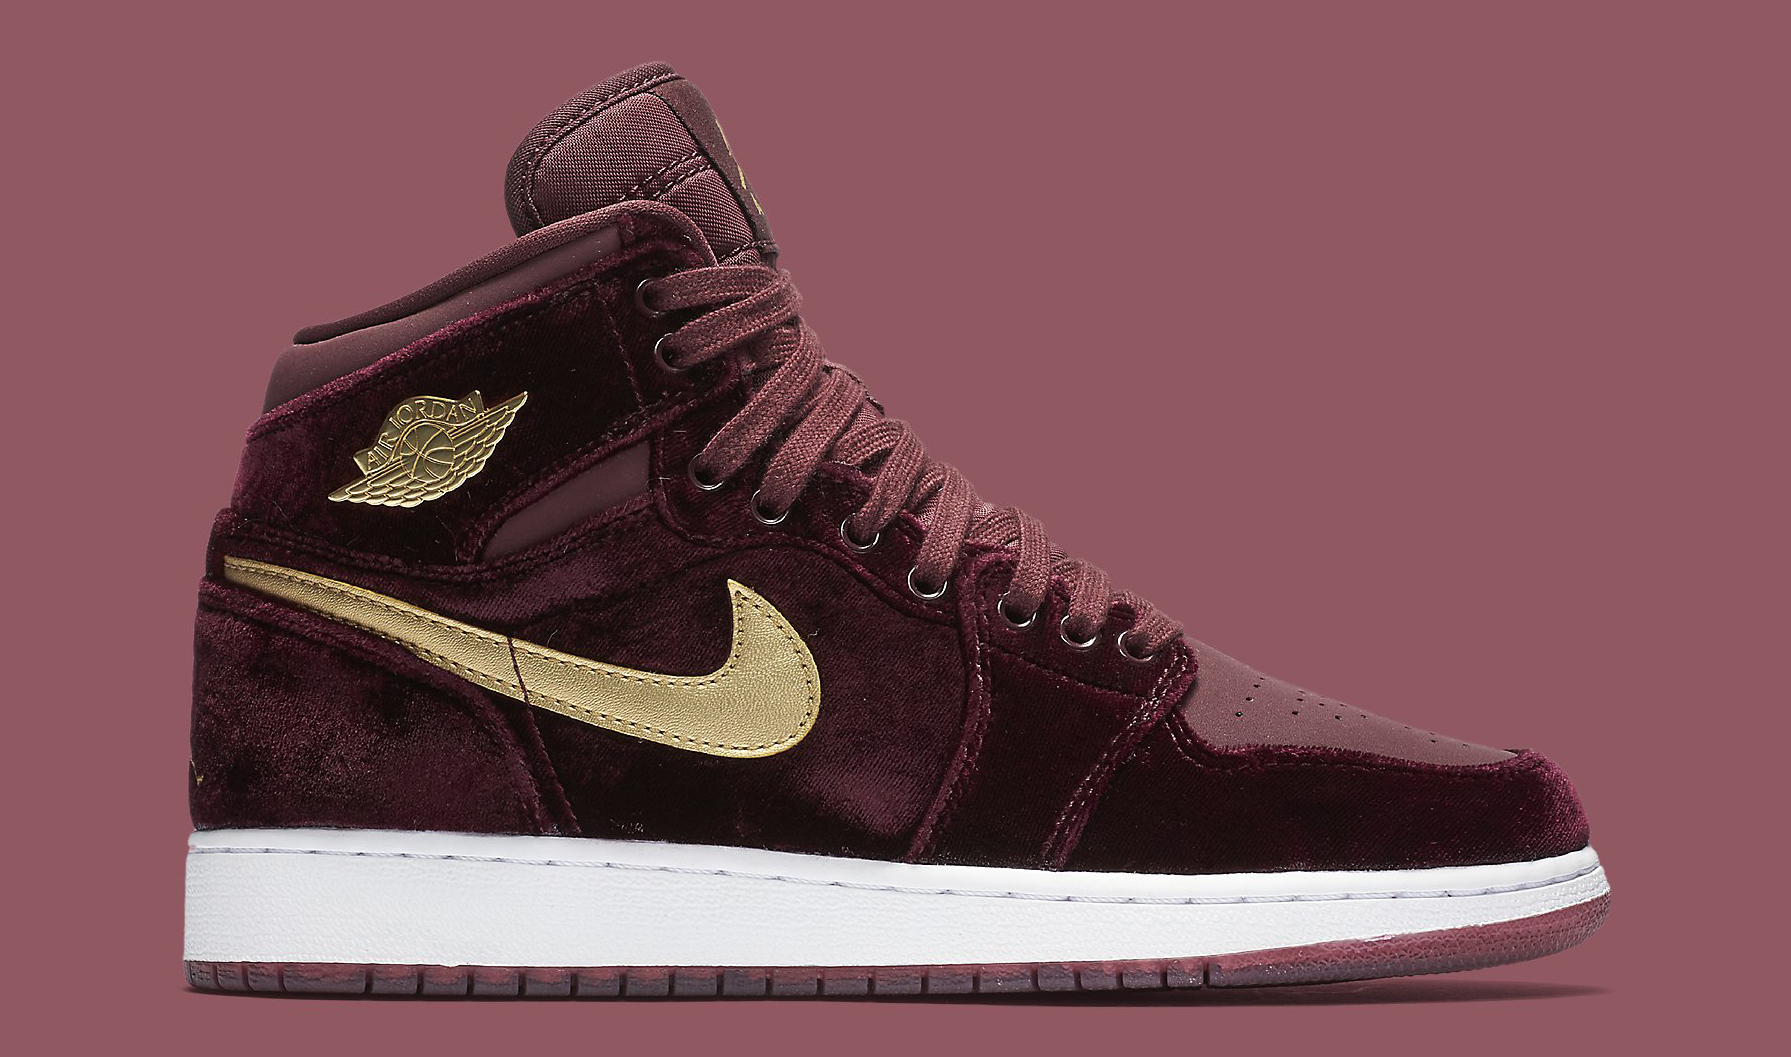 Image via Nike Red Velvet Air Jordan 1 Heiress 832596-640 Profile 96337dd88